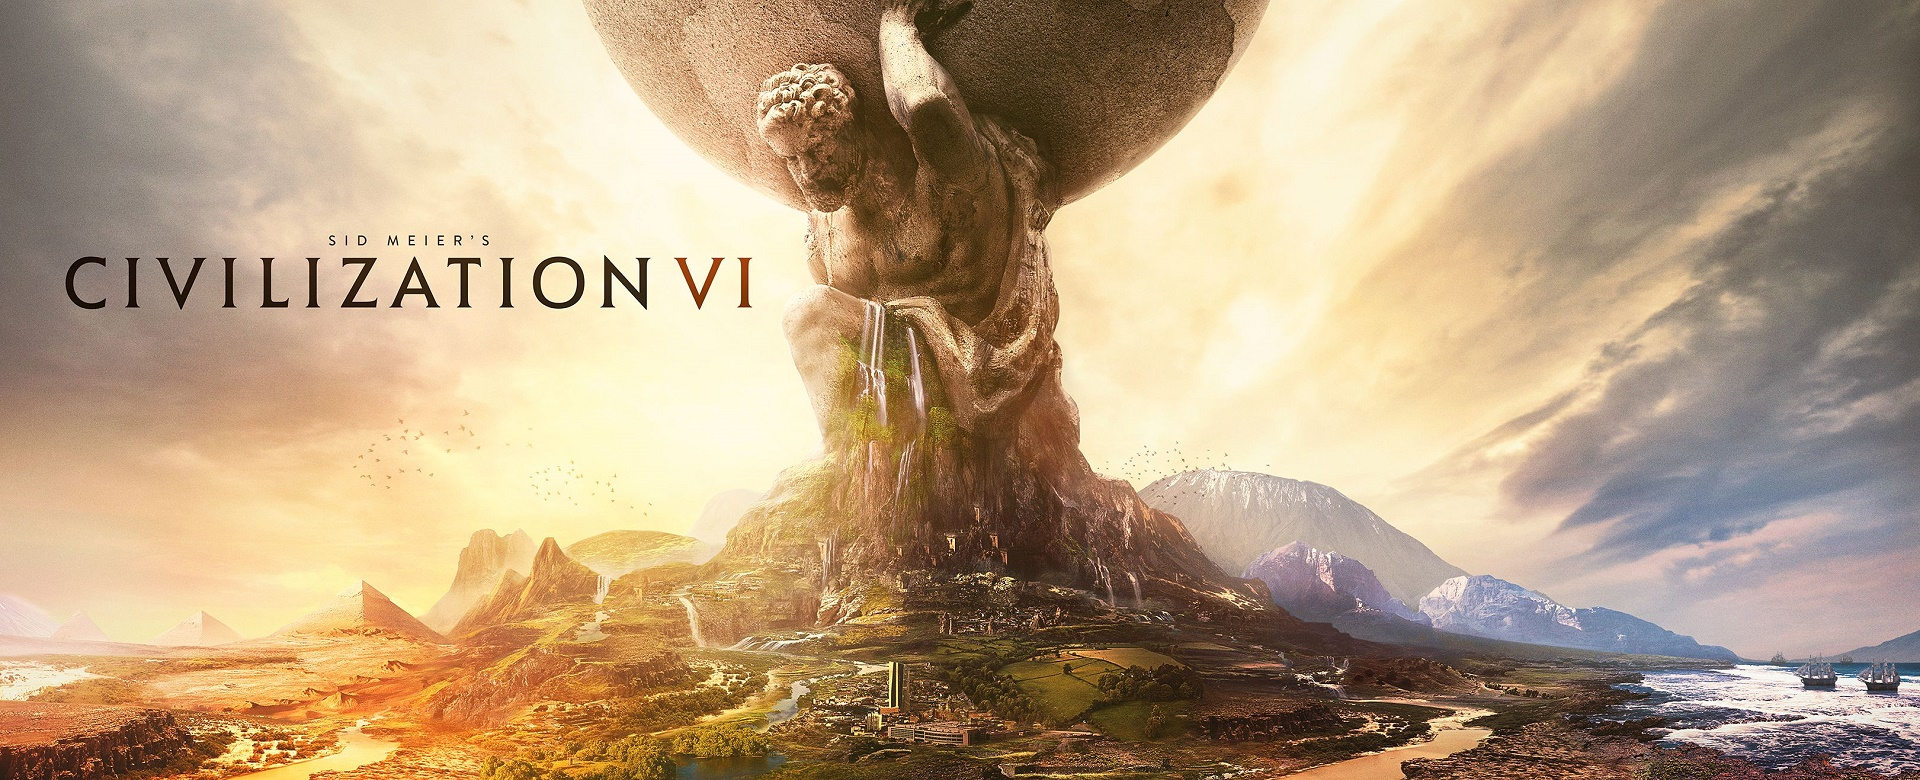 CivilizationVI_19_6x48__Billboard.0